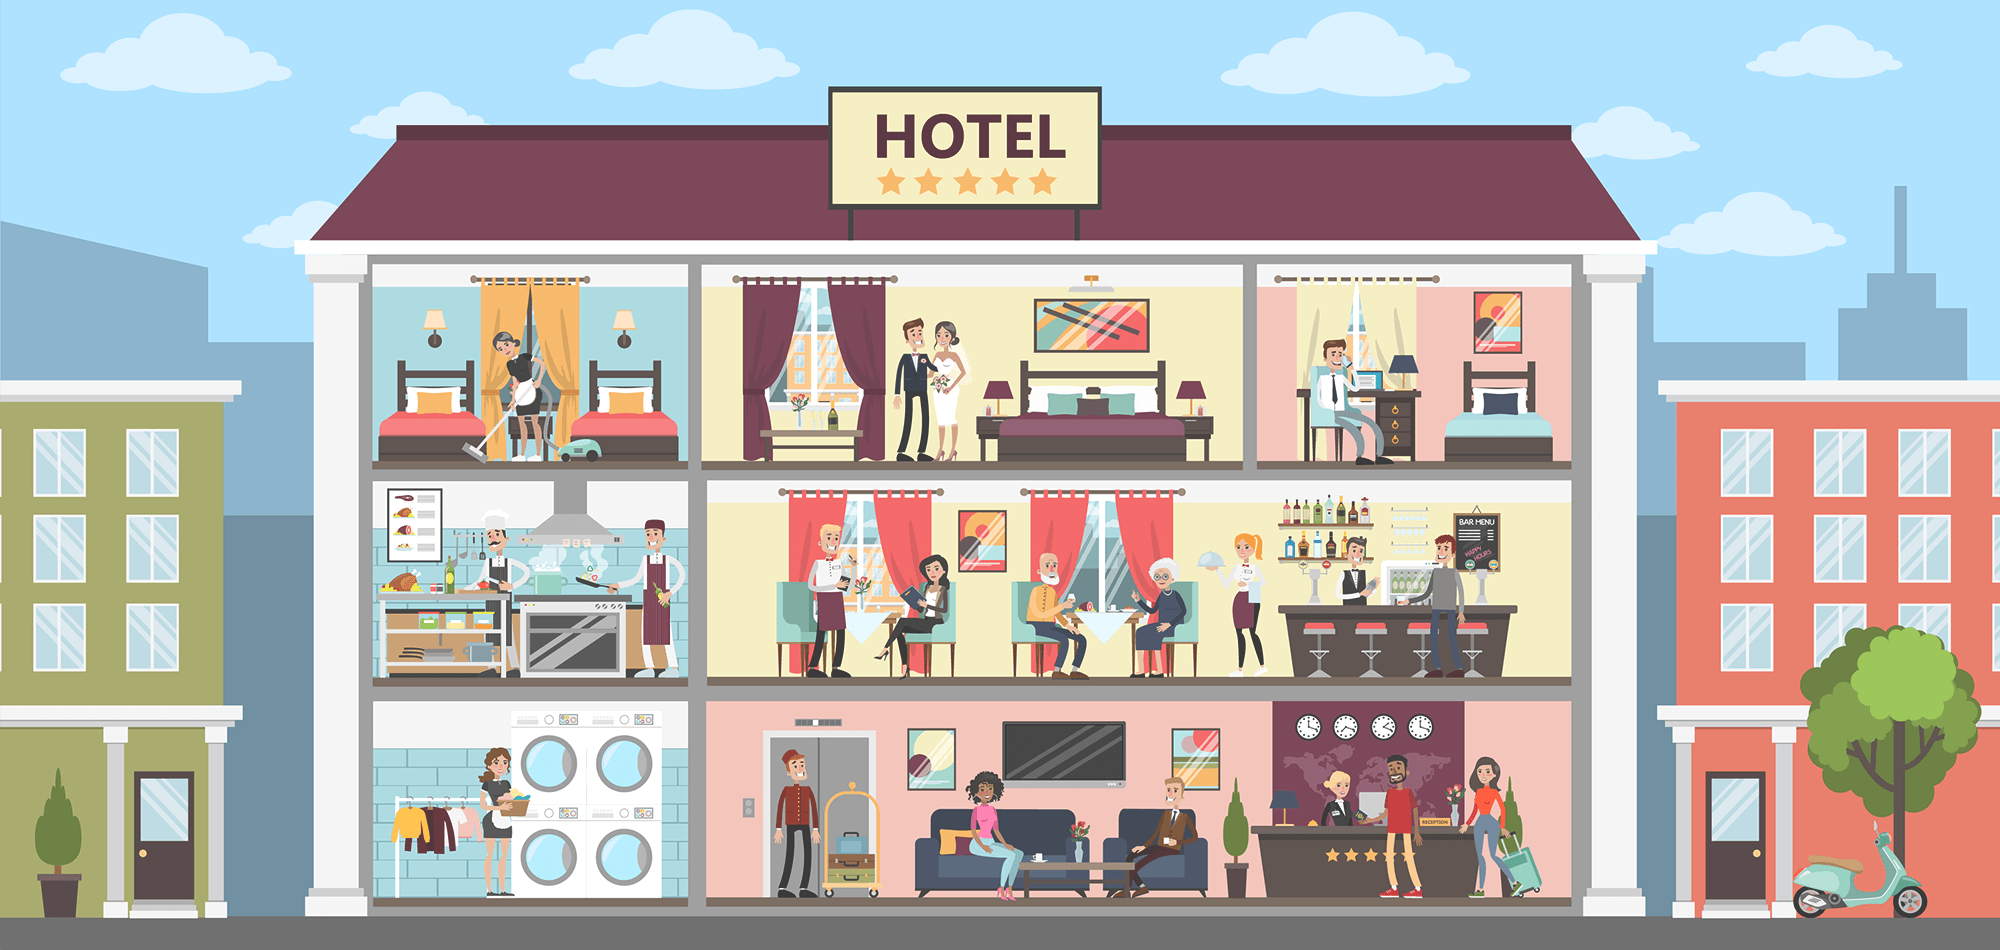 6 Ways Hotel WiFi Is About More than Providing In-Room Guest Access